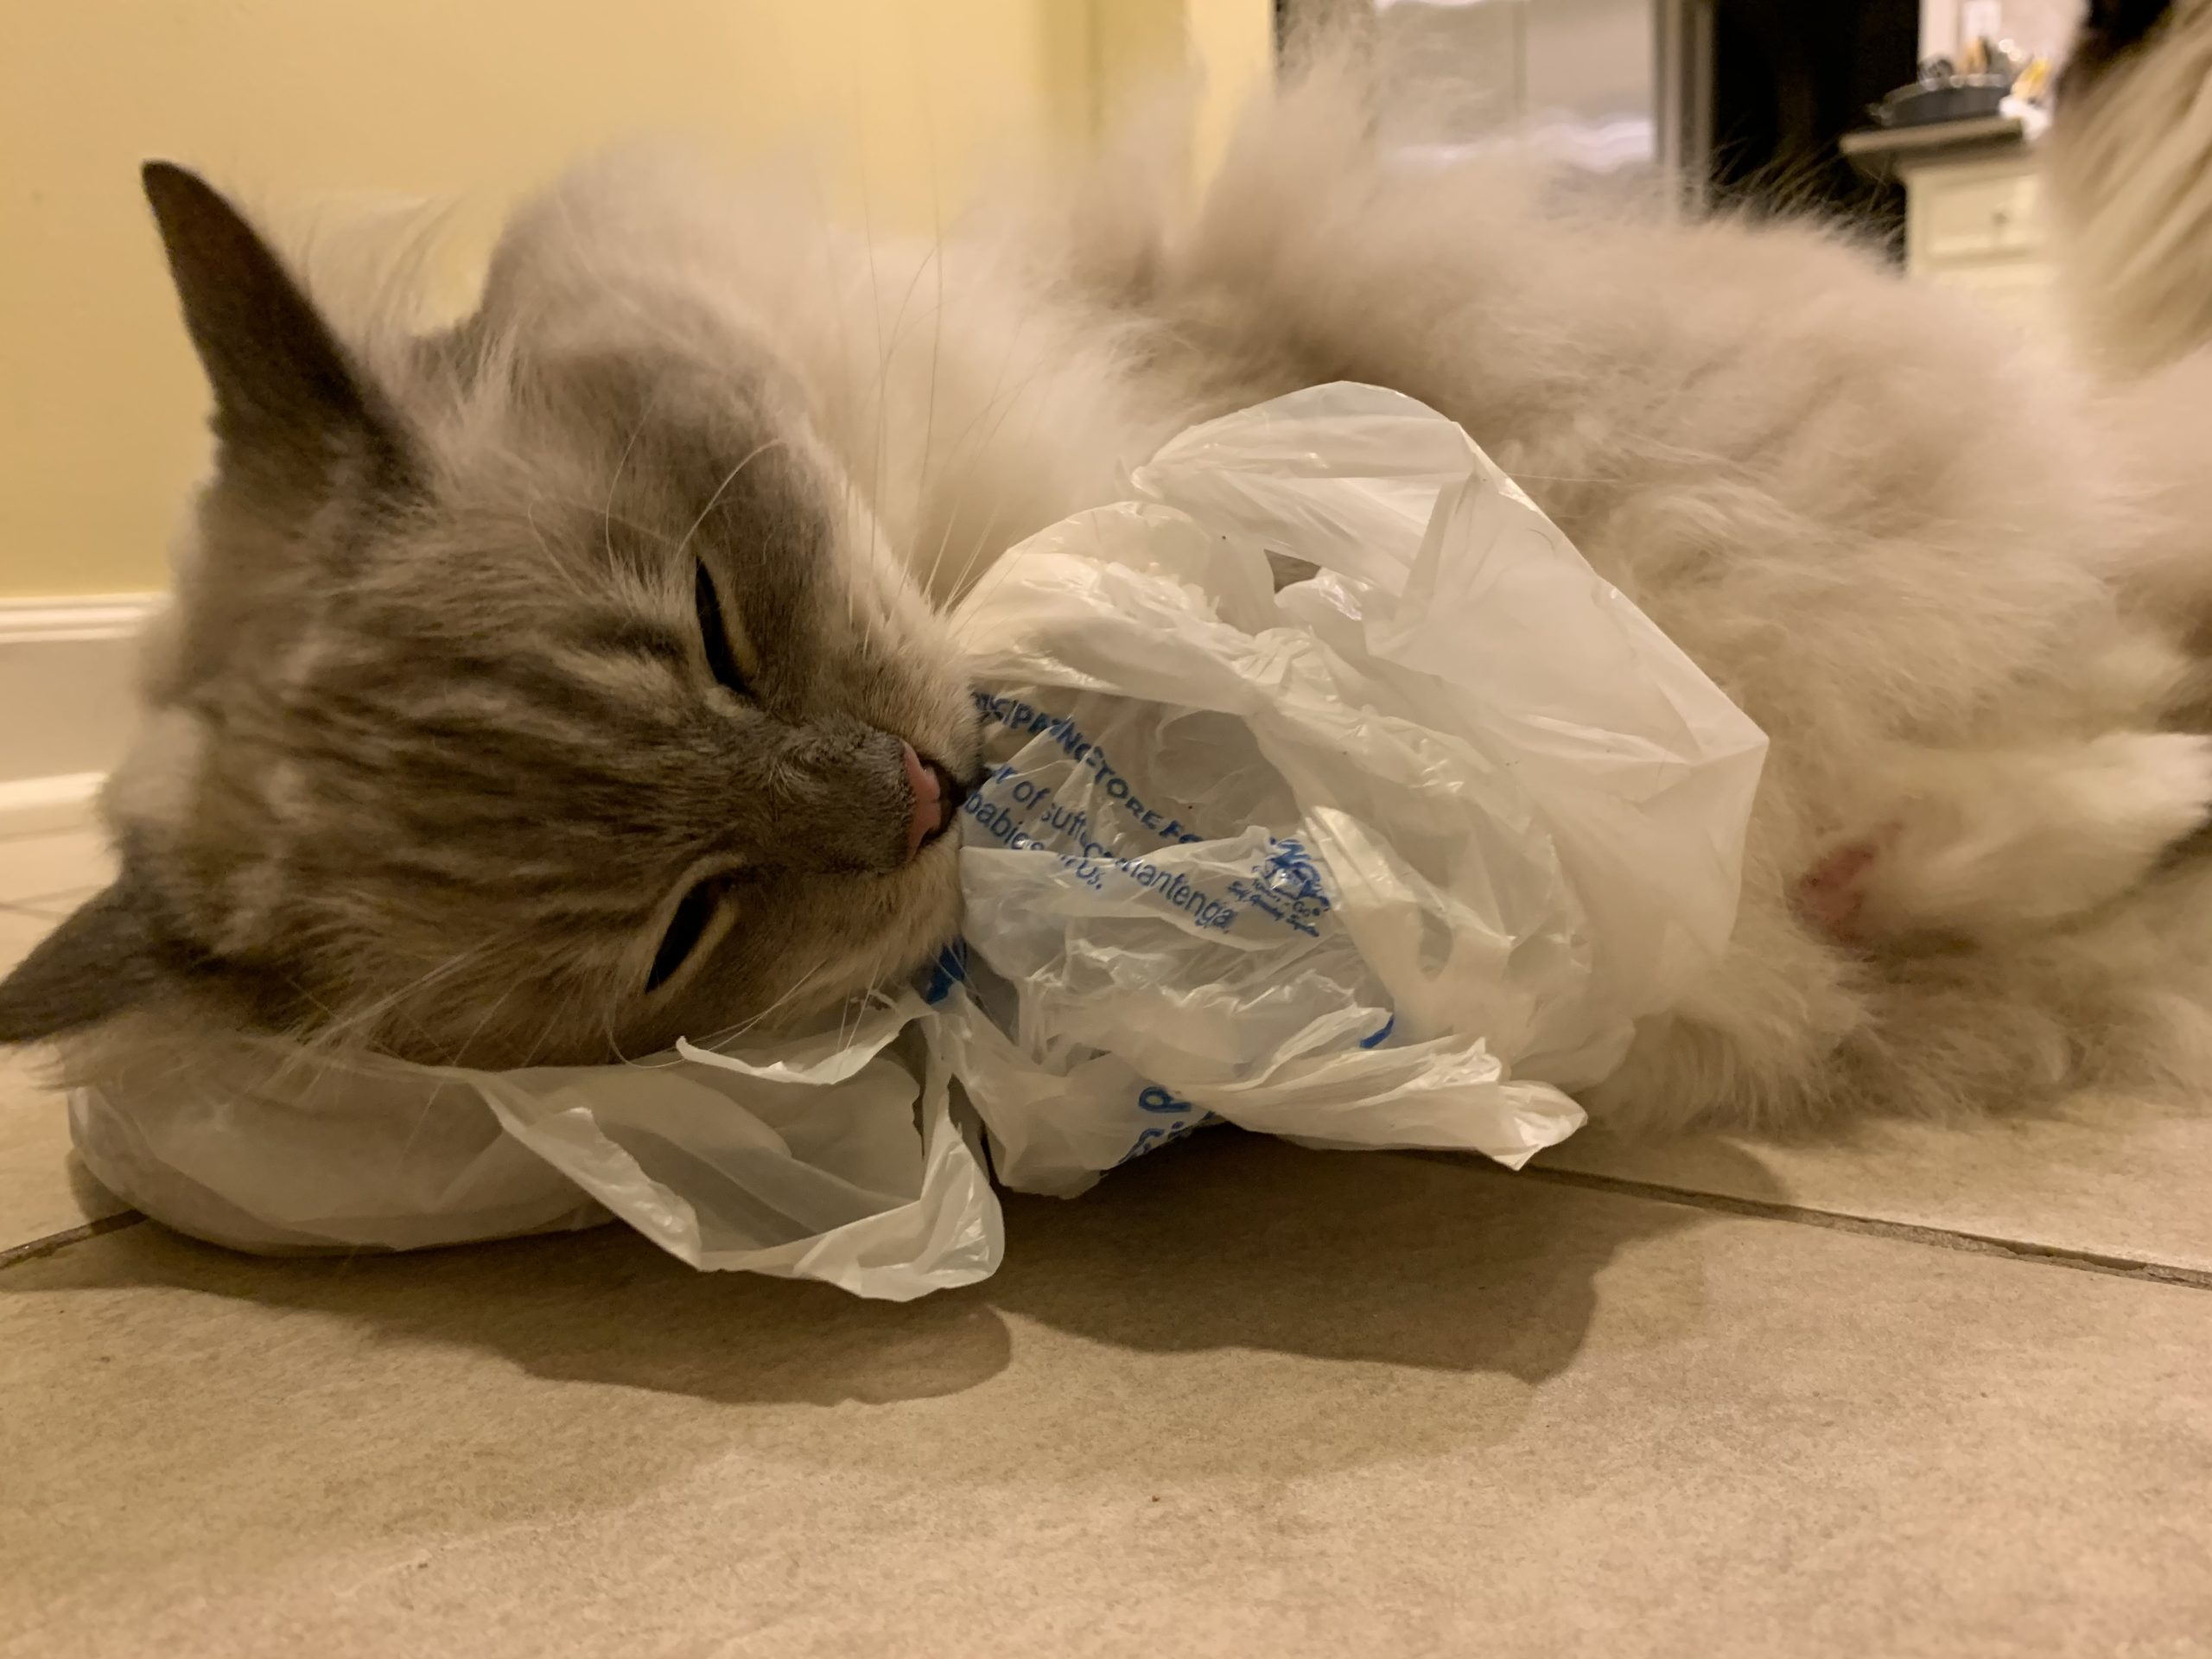 Why Do Cats Lick Plastic Why Do Cats Chew On Plastic Bags